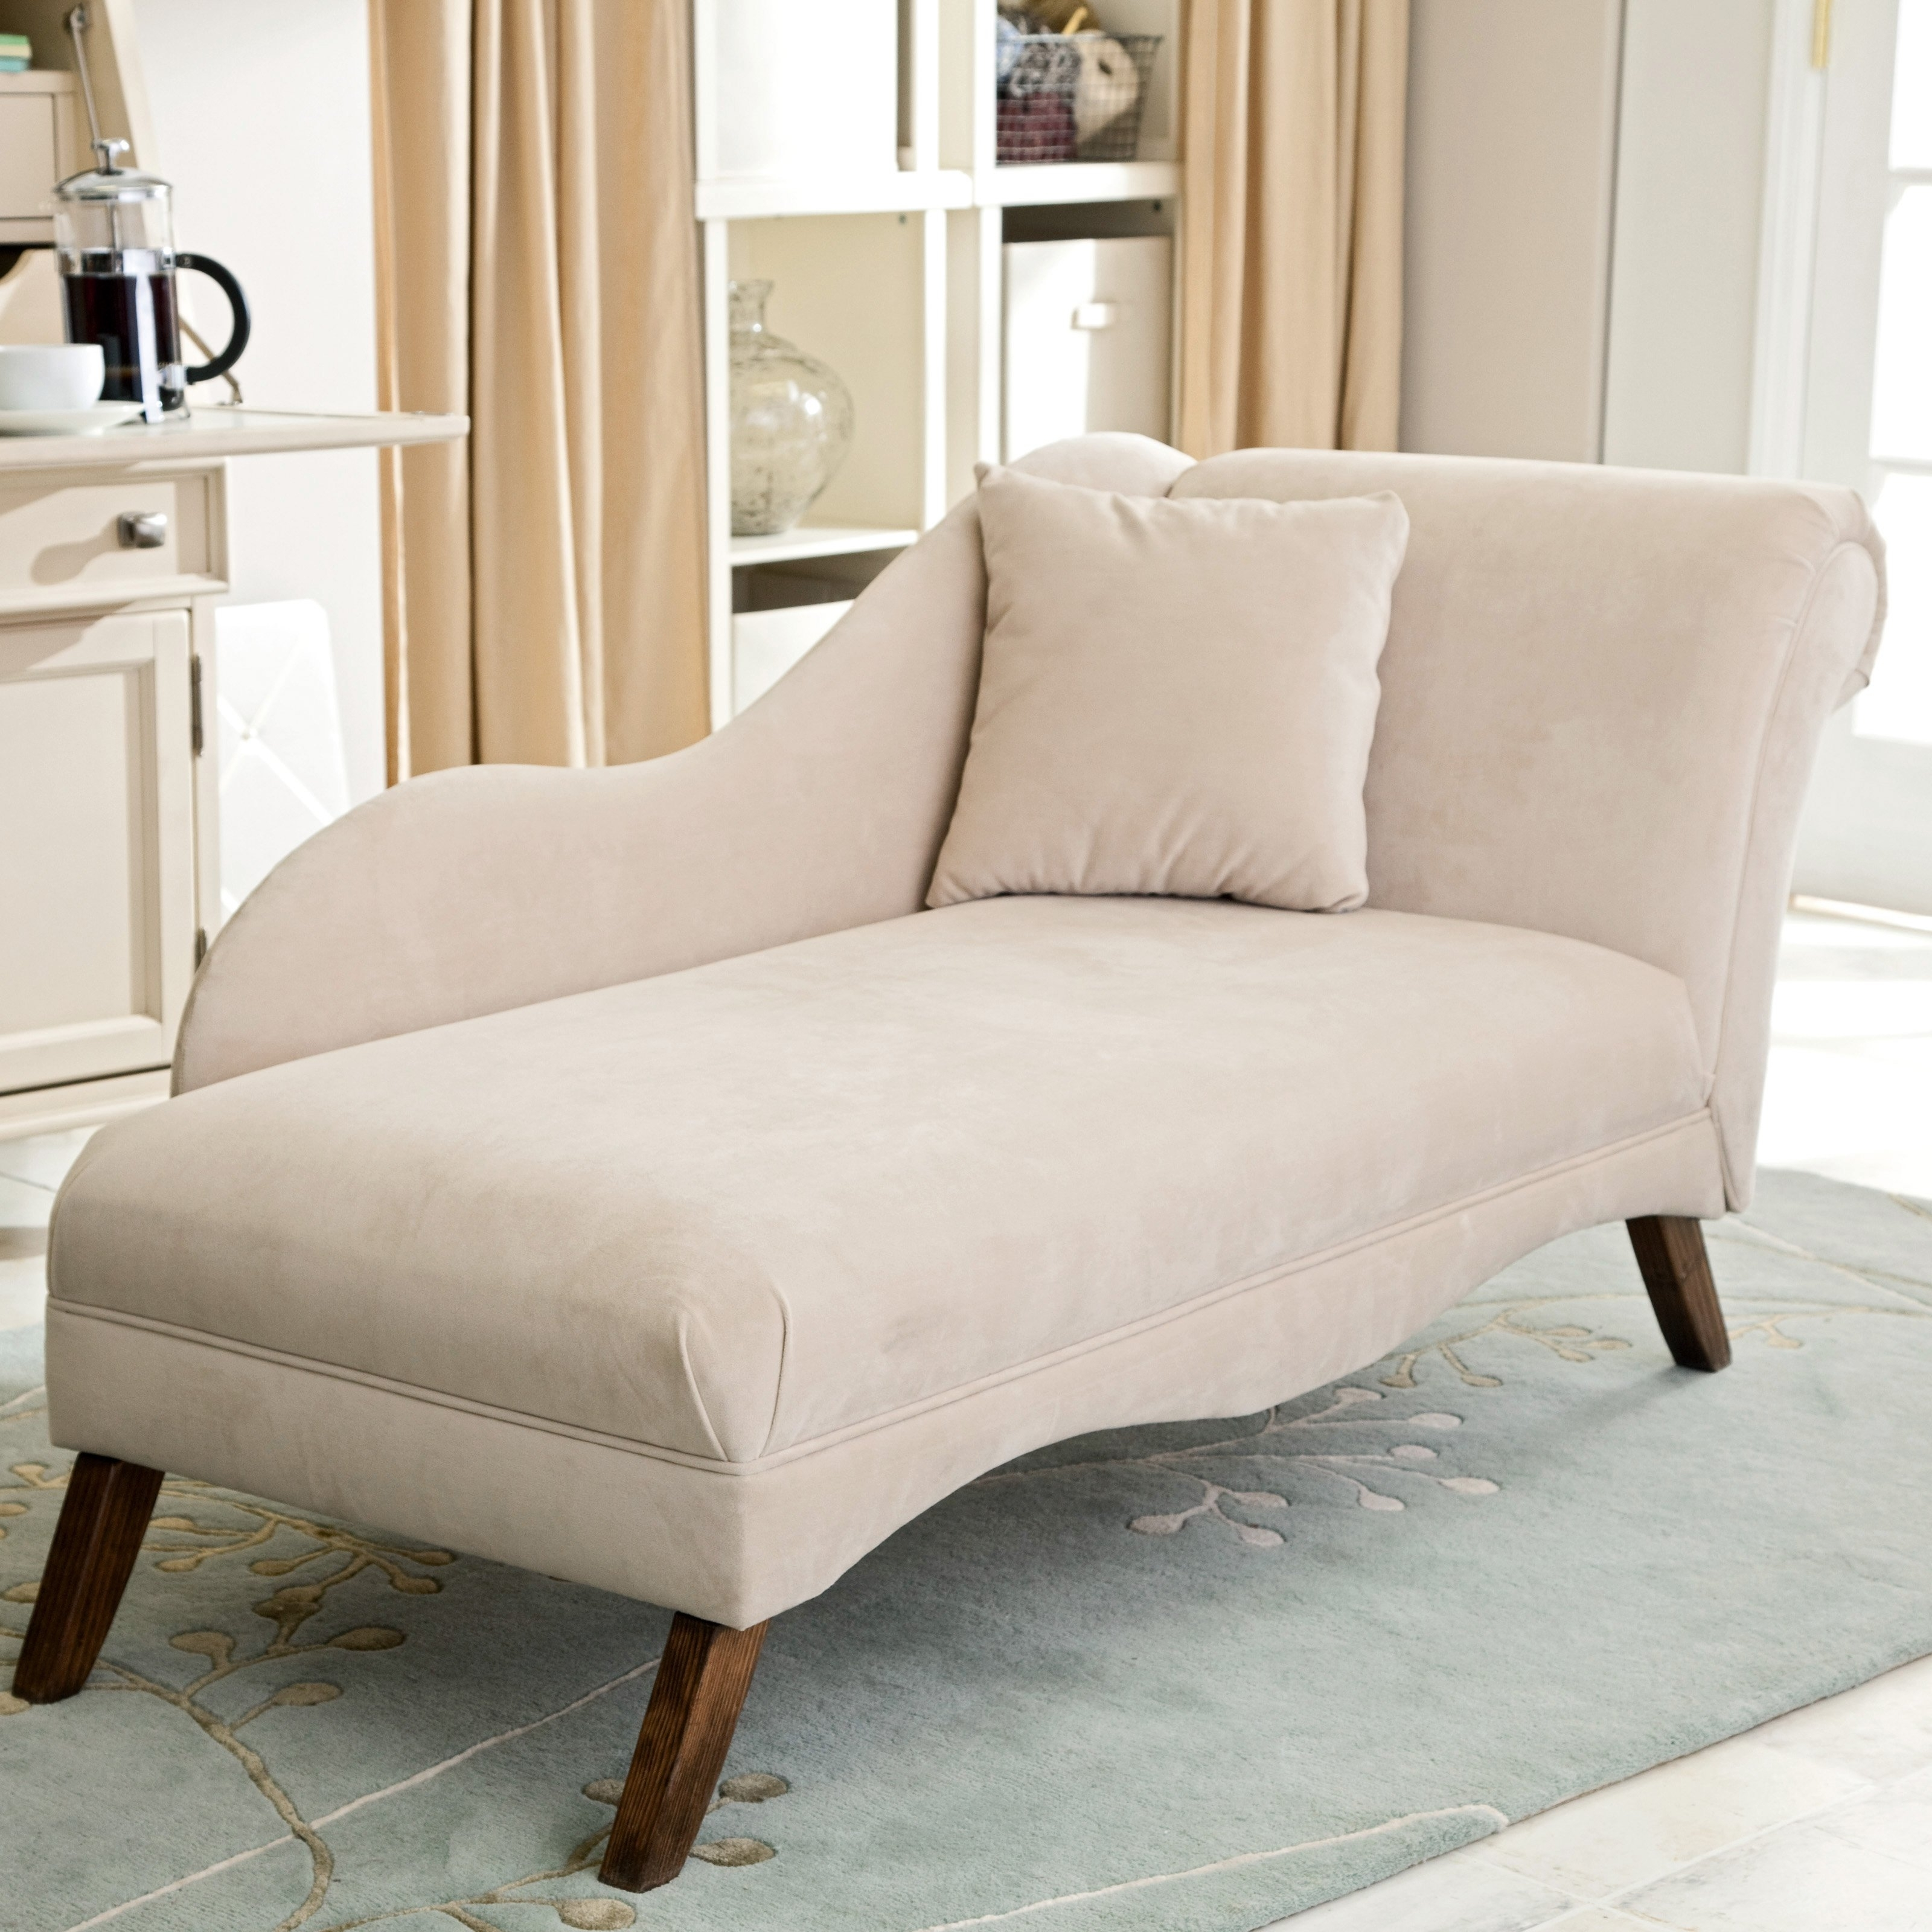 Newest Chaise Lounge Chair – Symbol Of Style And Practicality With Beige Chaise Lounges (View 3 of 15)